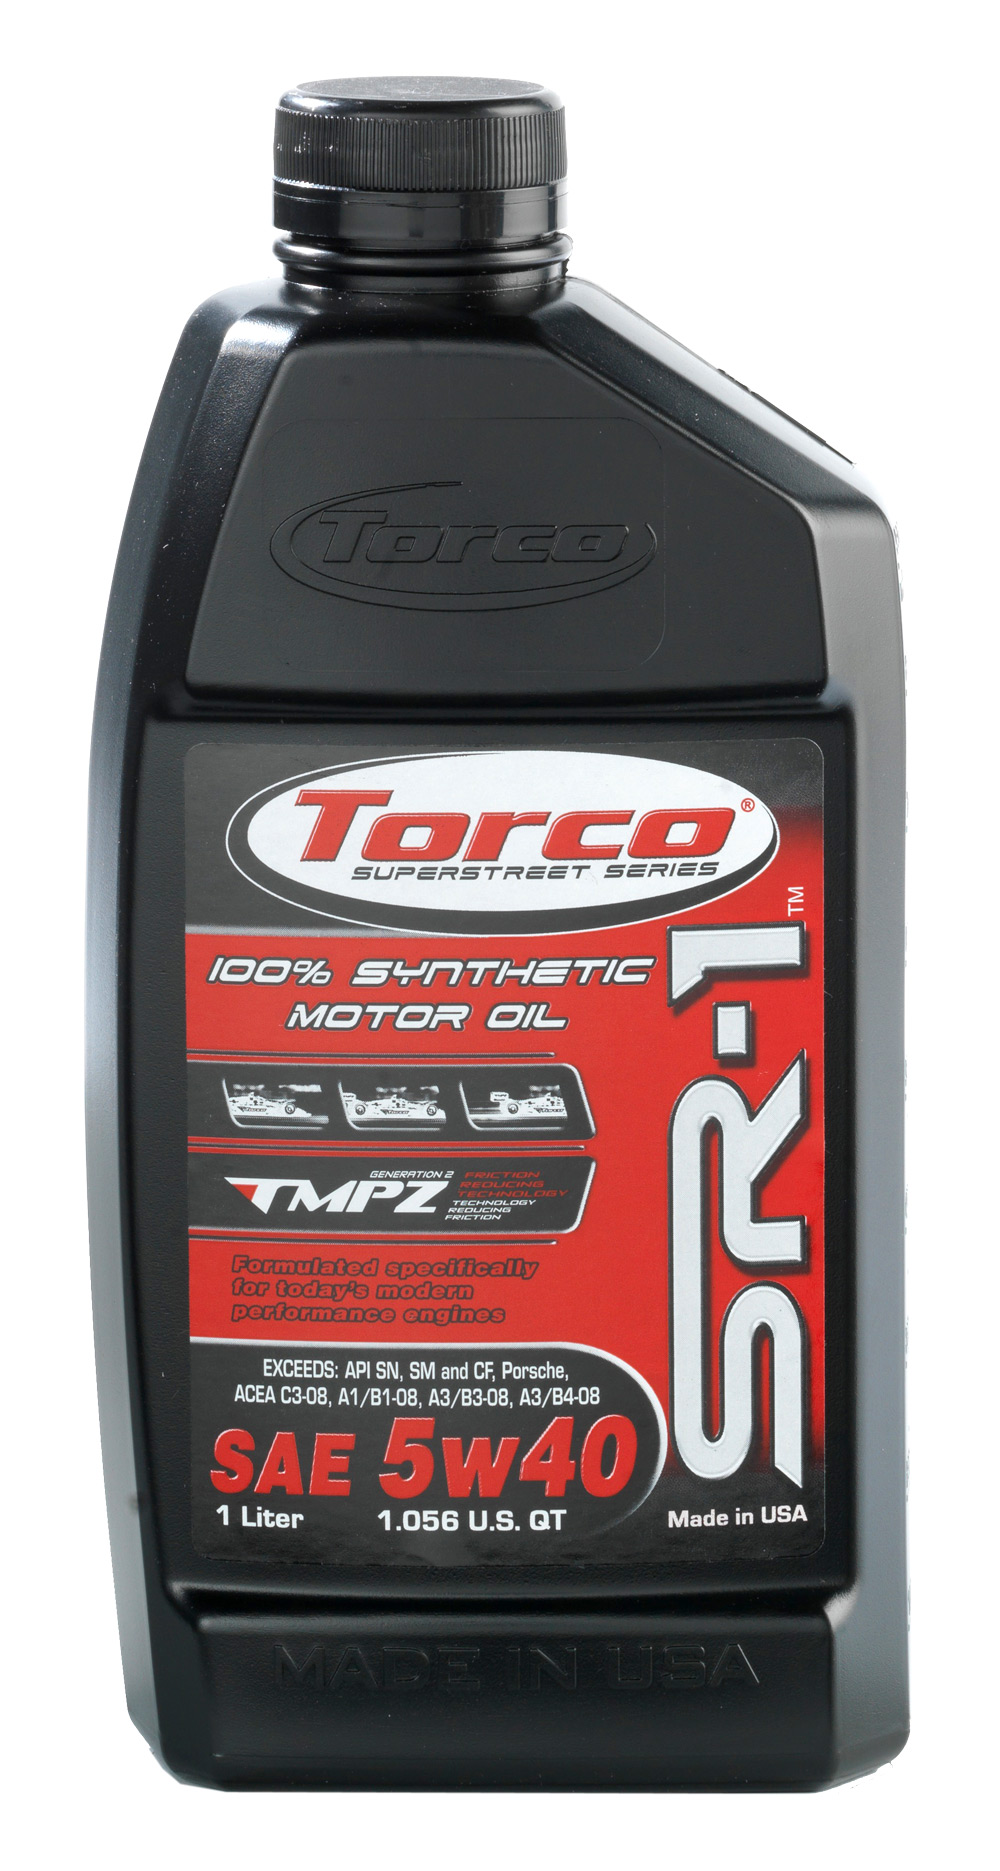 Torco sr 1r synthetic motor oil 100 synthetic nissan for What is synthetic motor oil made from